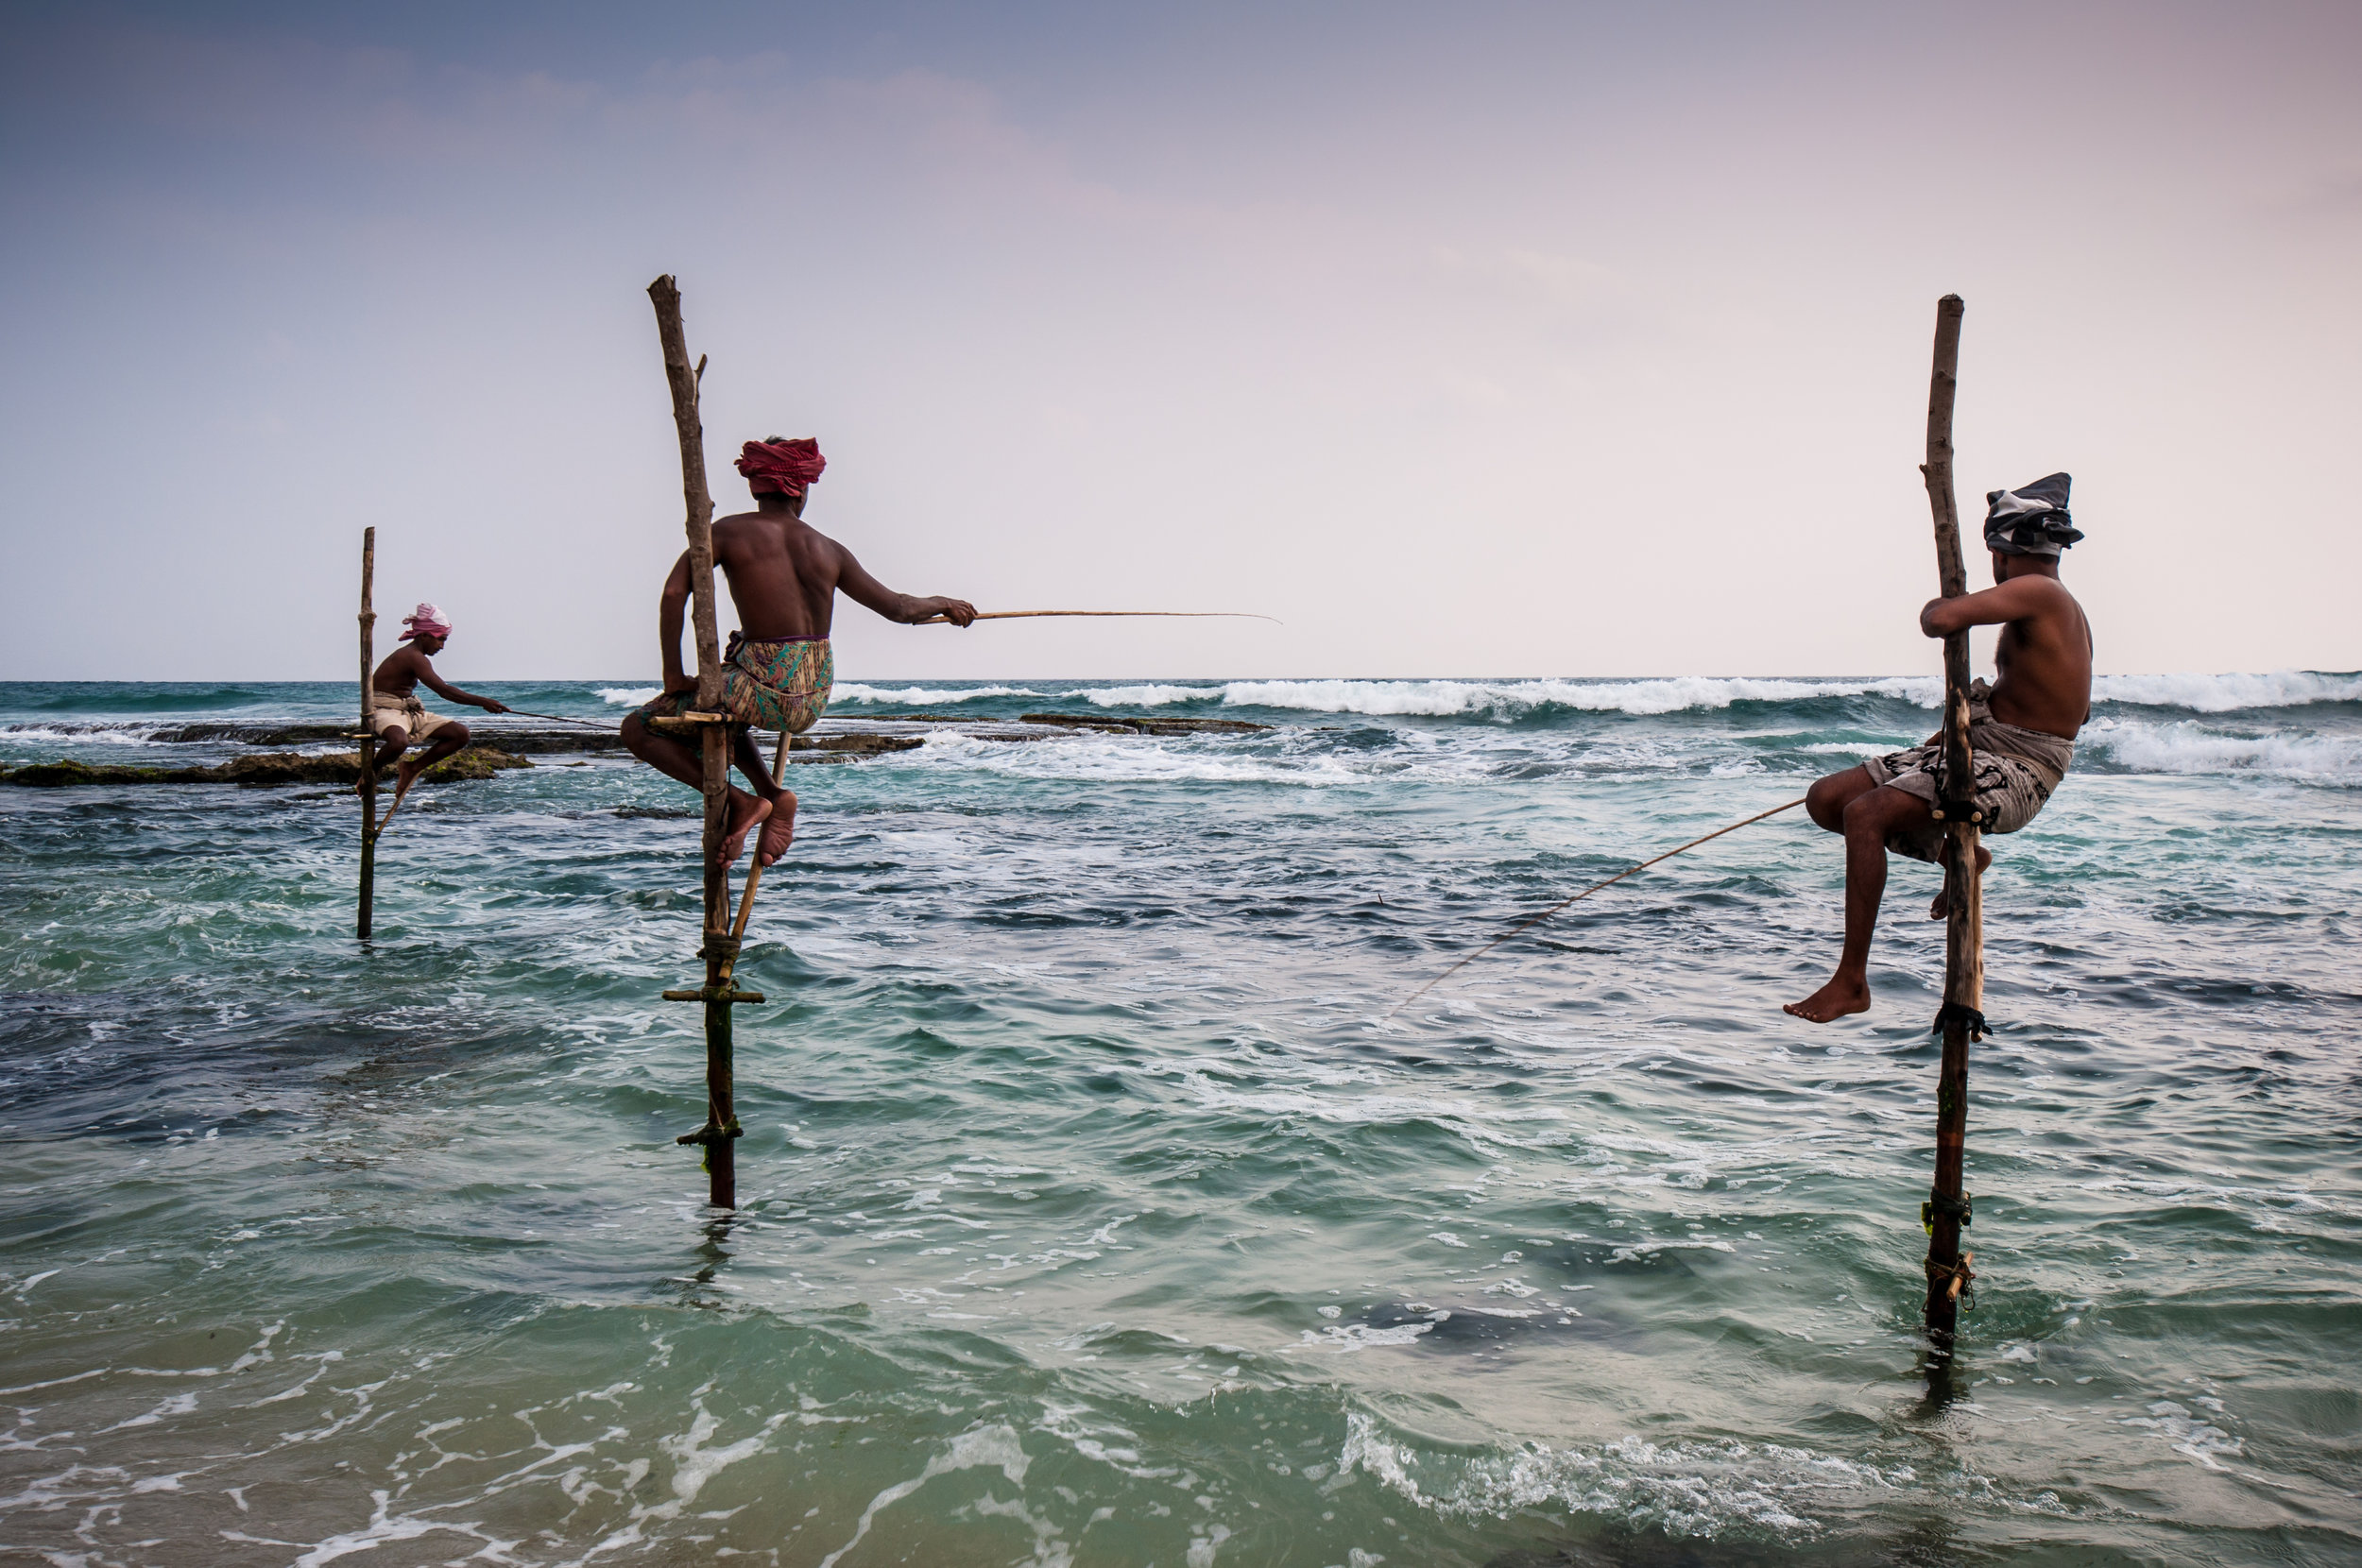 invite-to-paradise-maldives-sri-lanka-specialists-experts-travel-agent-tour-operator-stilt-fisherman-121120030.jpg